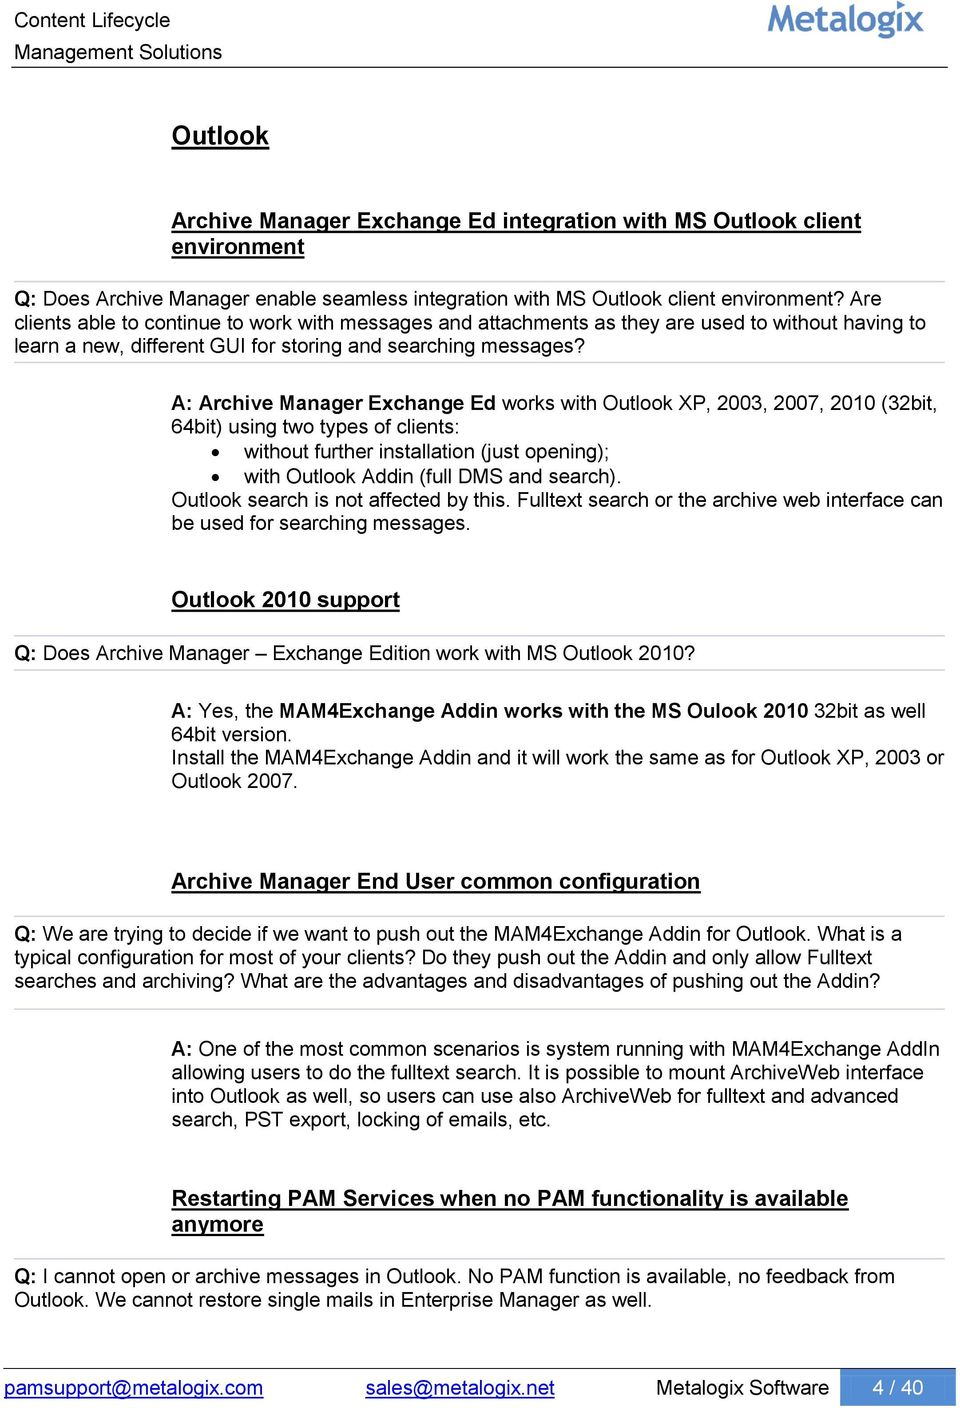 A: Archive Manager Exchange Ed works with Outlook XP, 2003, 2007, 2010 (32bit, 64bit) using two types of clients: without further installation (just opening); with Outlook Addin (full DMS and search).